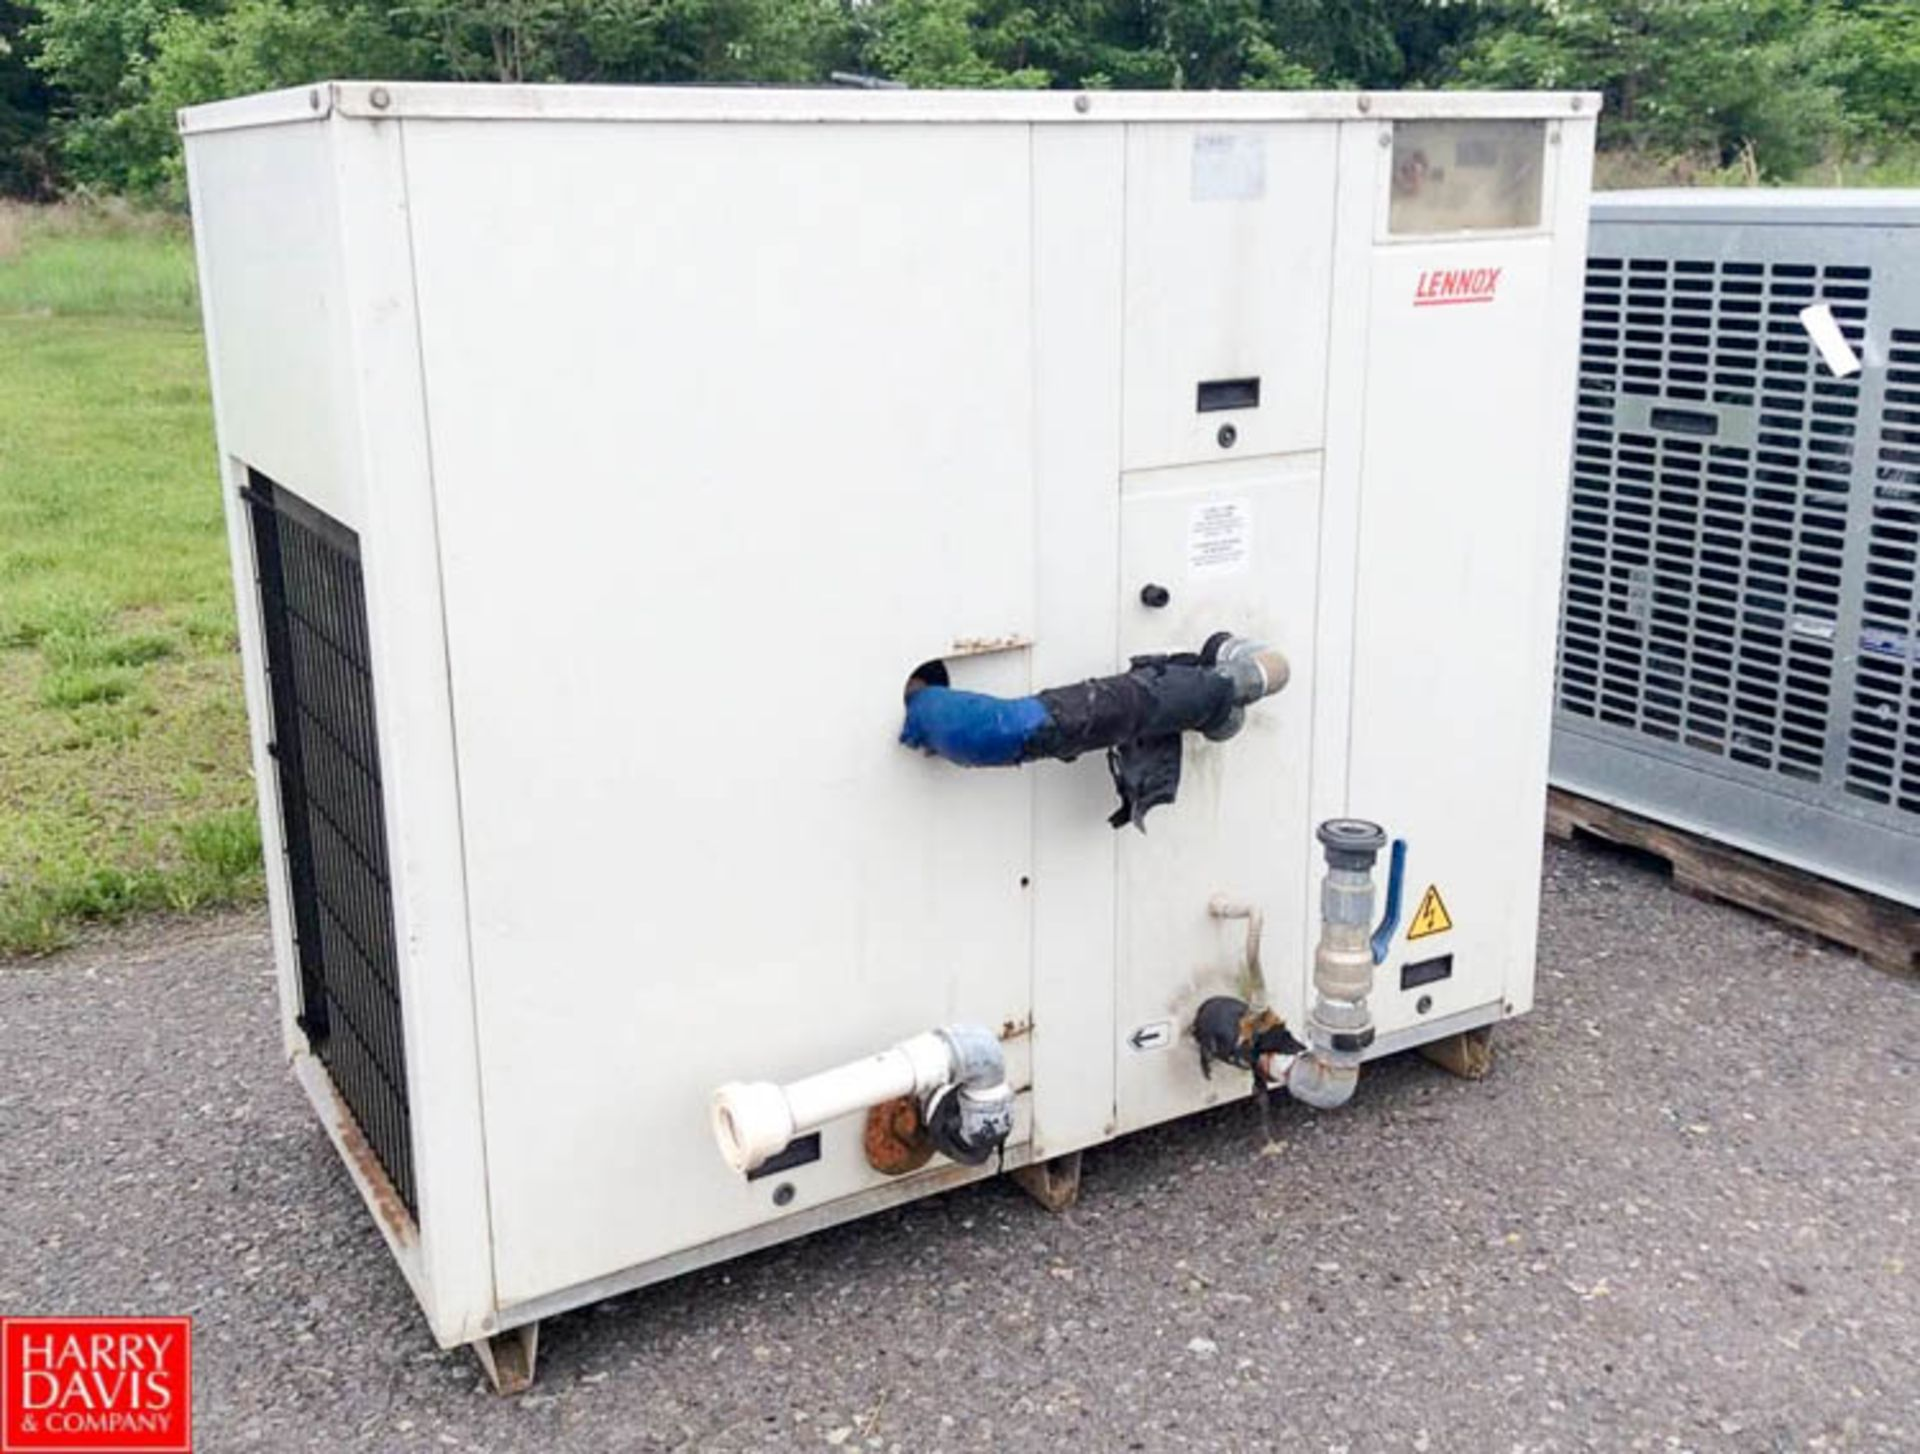 Lot 49a - Lennox 3-Phase Chiller, Model PRA 5 - Rigging Fee: $25